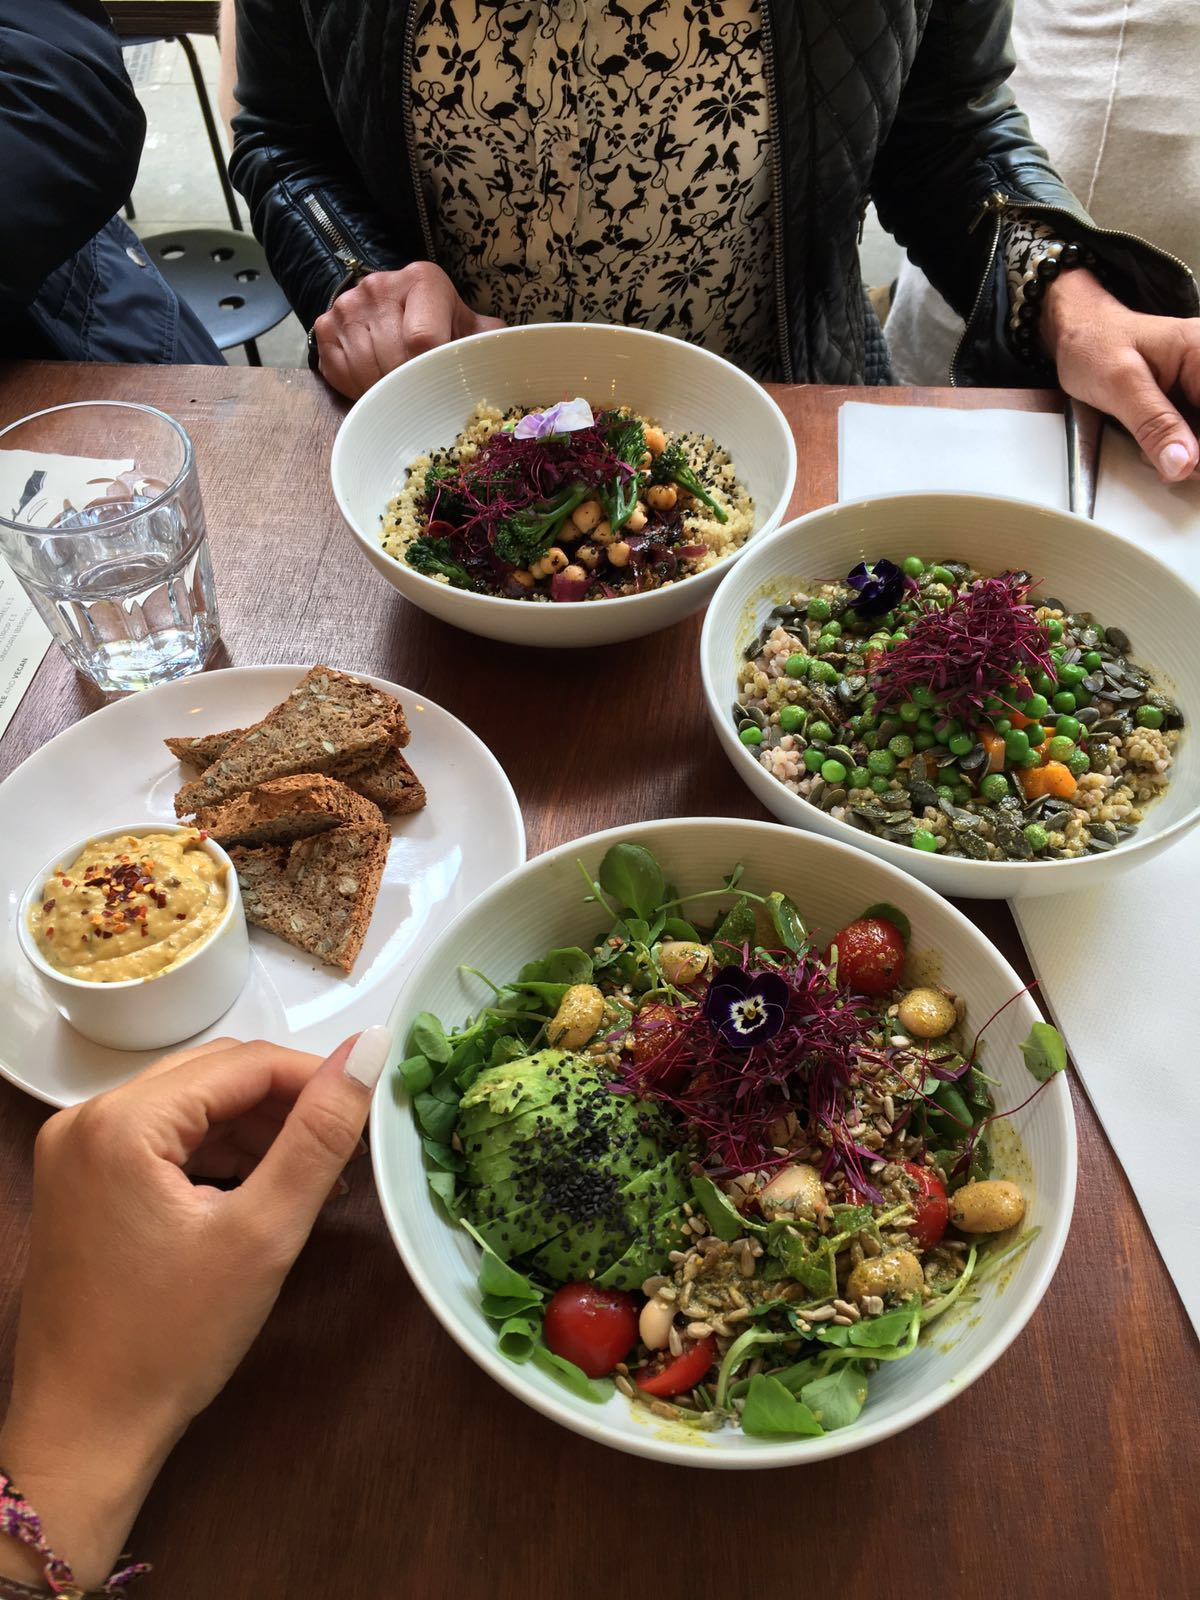 The best 8 places to eat vegan in London